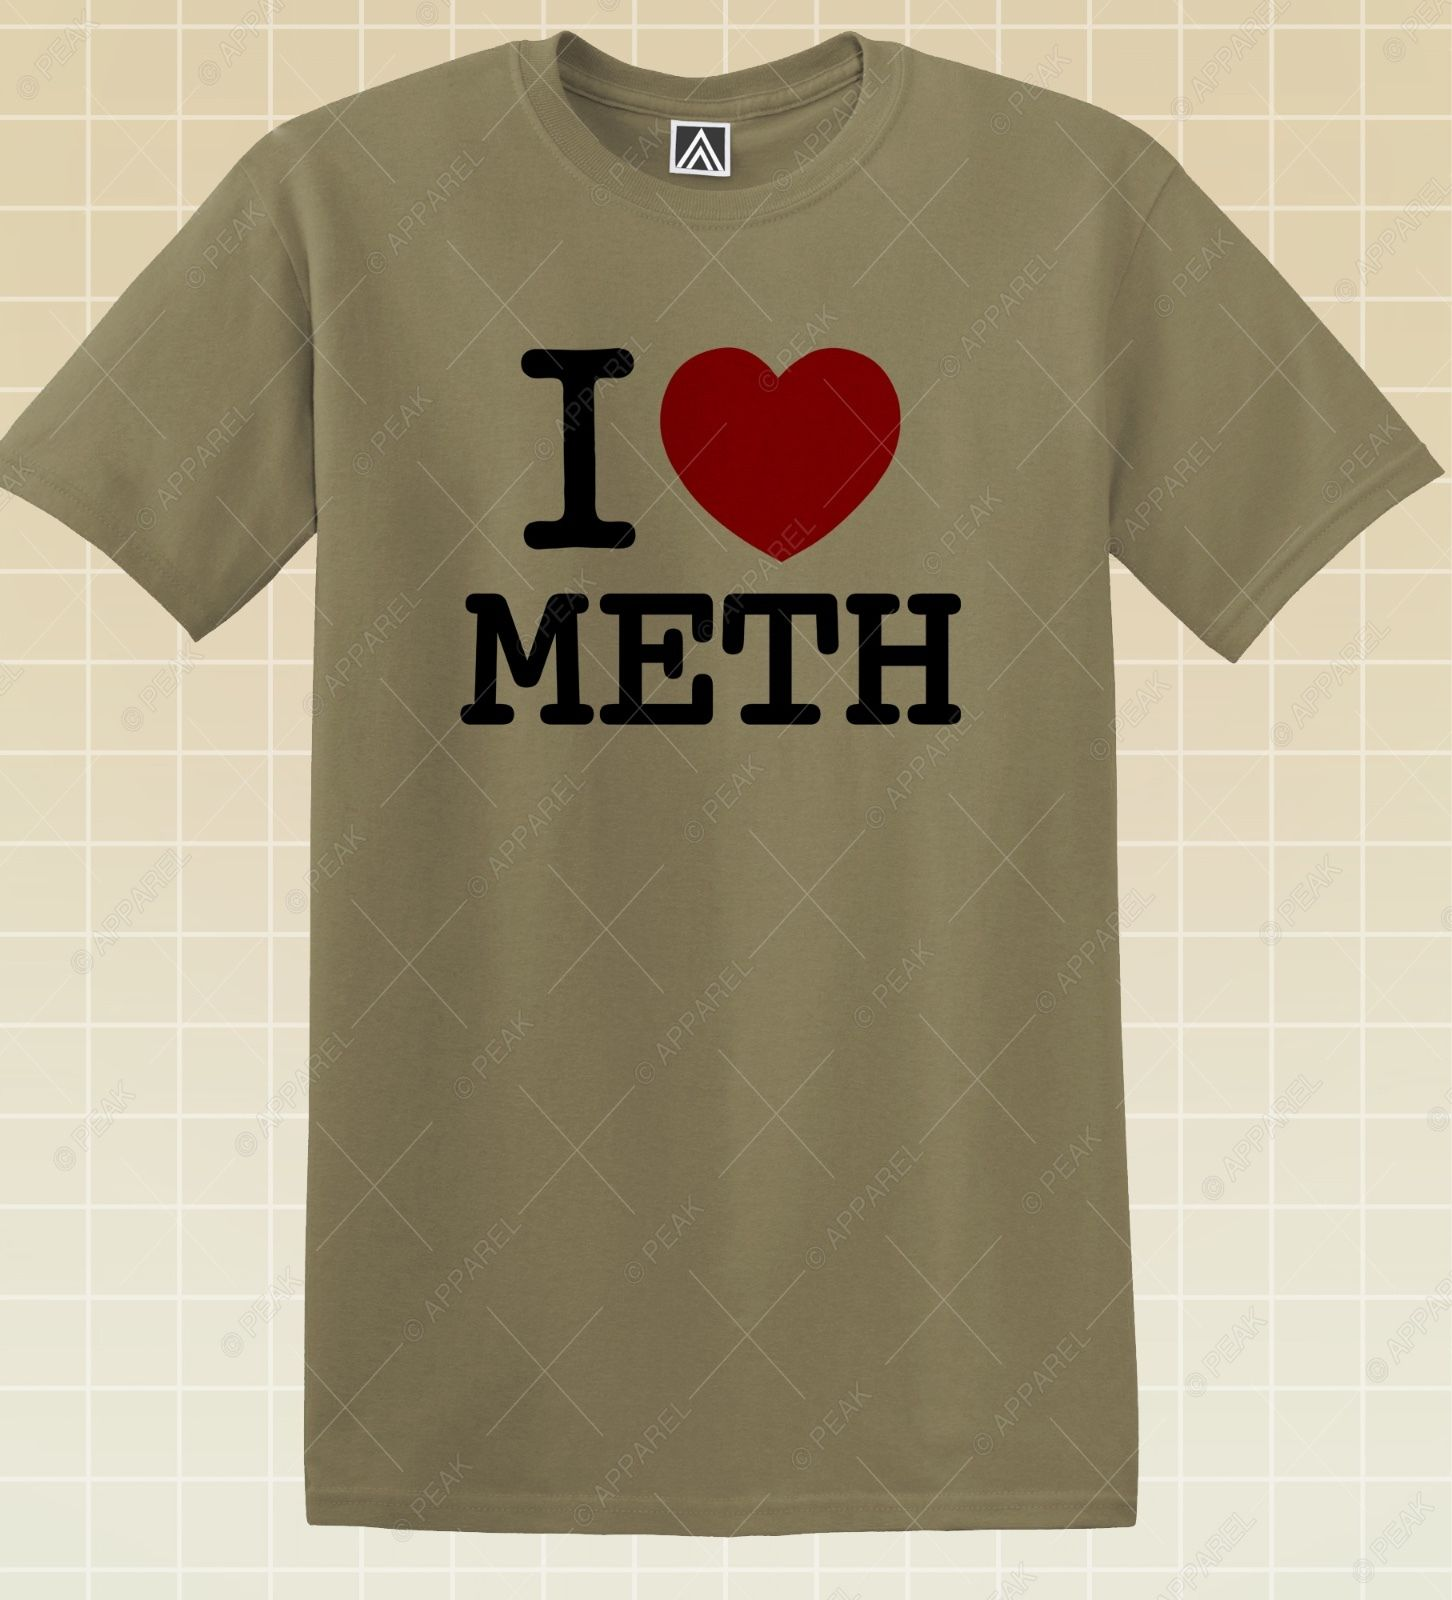 a247051589 I Love Meth T shirt NY Funny Drugs Tee LSD High Crystals Novelty Party Top-in  T-Shirts from Men's Clothing on Aliexpress.com | Alibaba Group